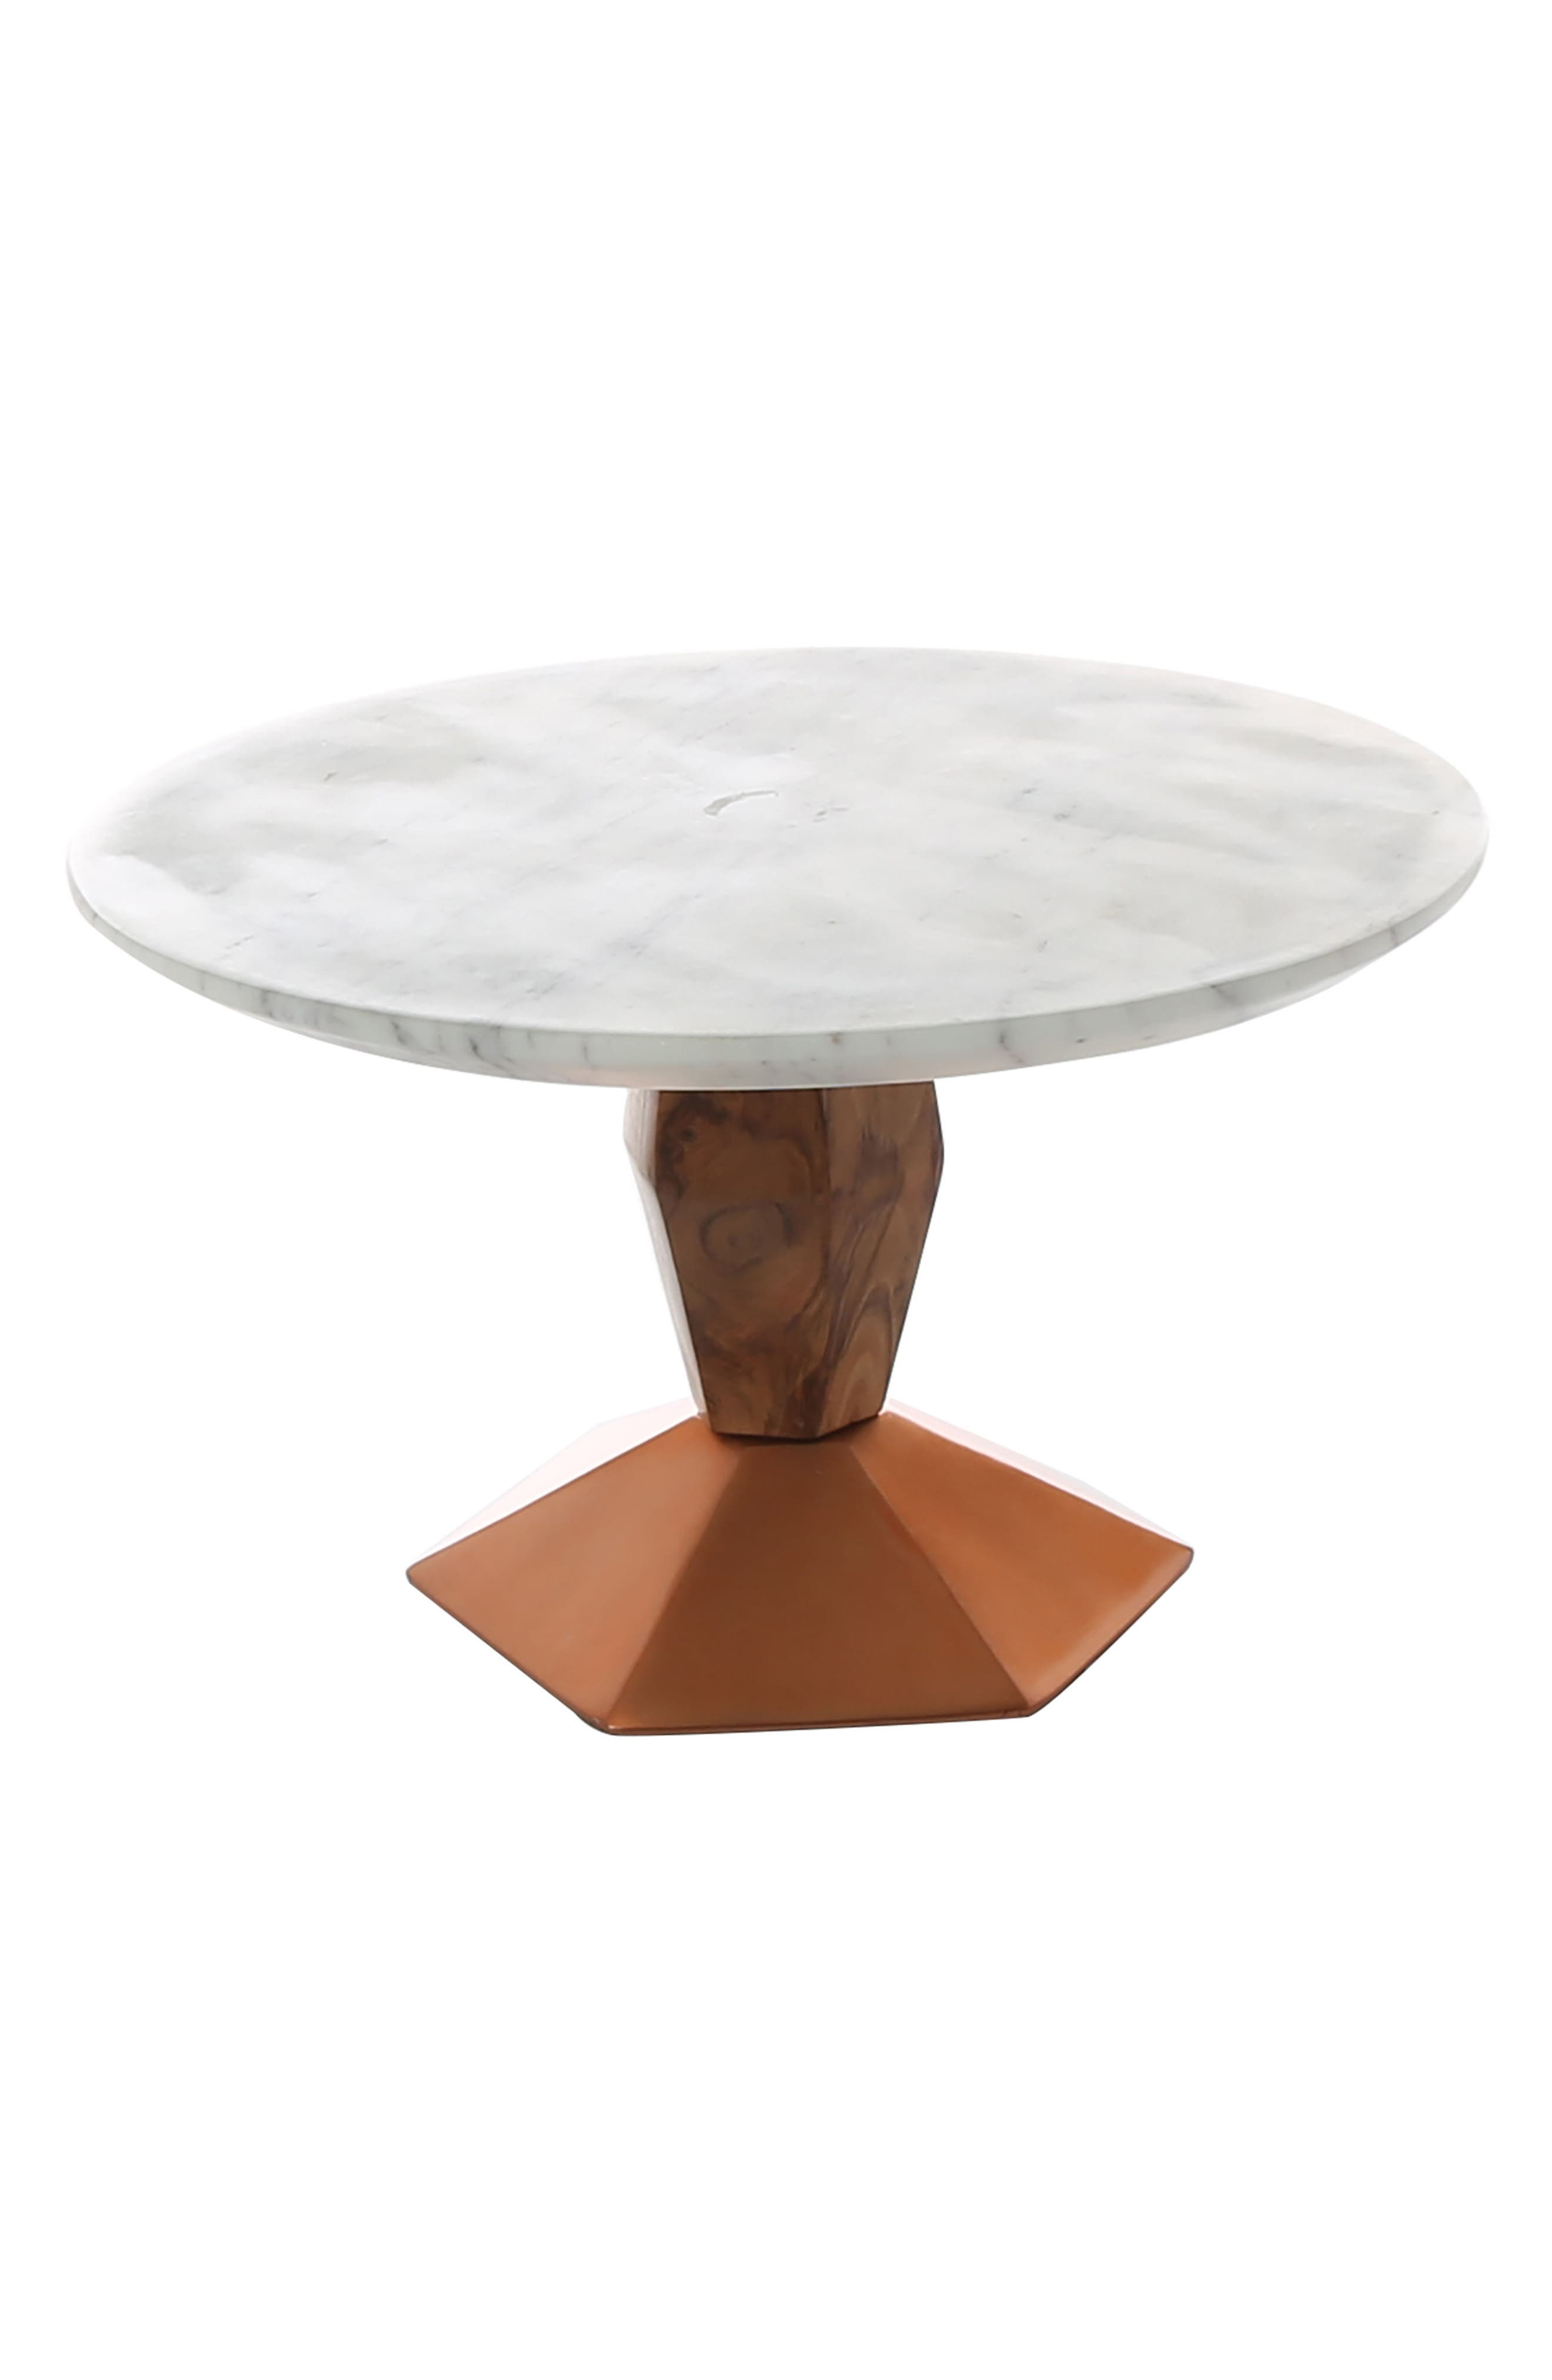 Thirstystone Marble & Wood Cake Stand with Copper Base